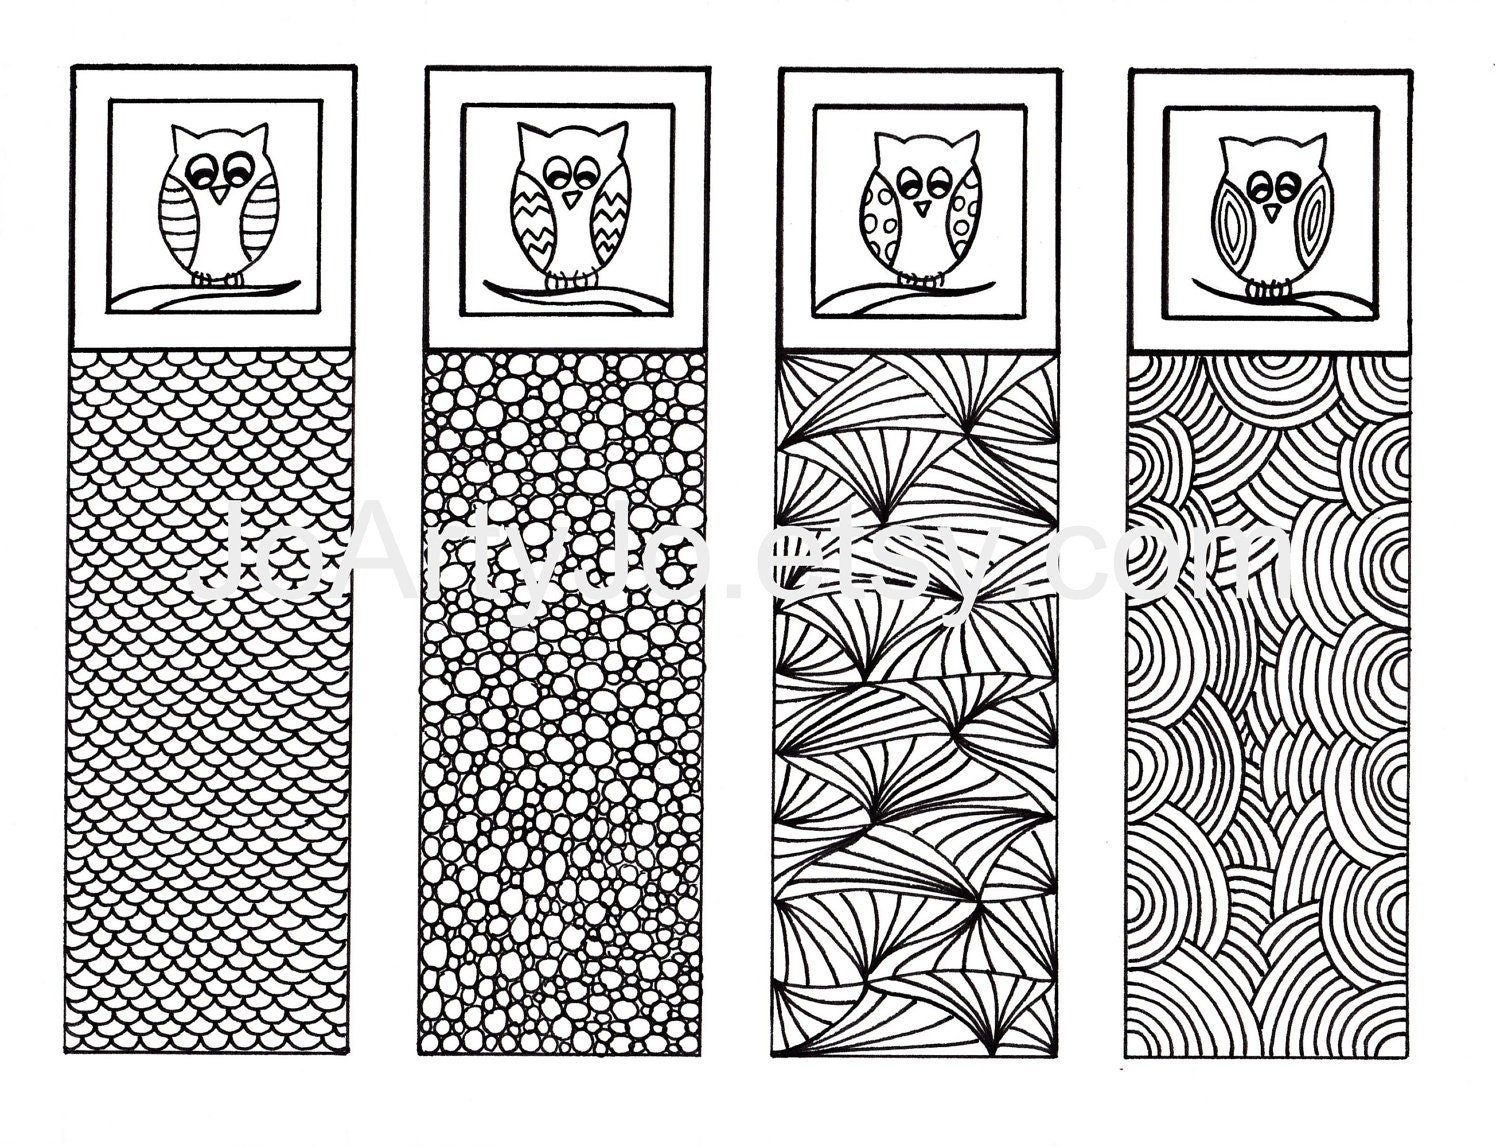 Printable Coloring Bookmarks Free : Printable bookmarks owl zendoodle art zentangle inspired